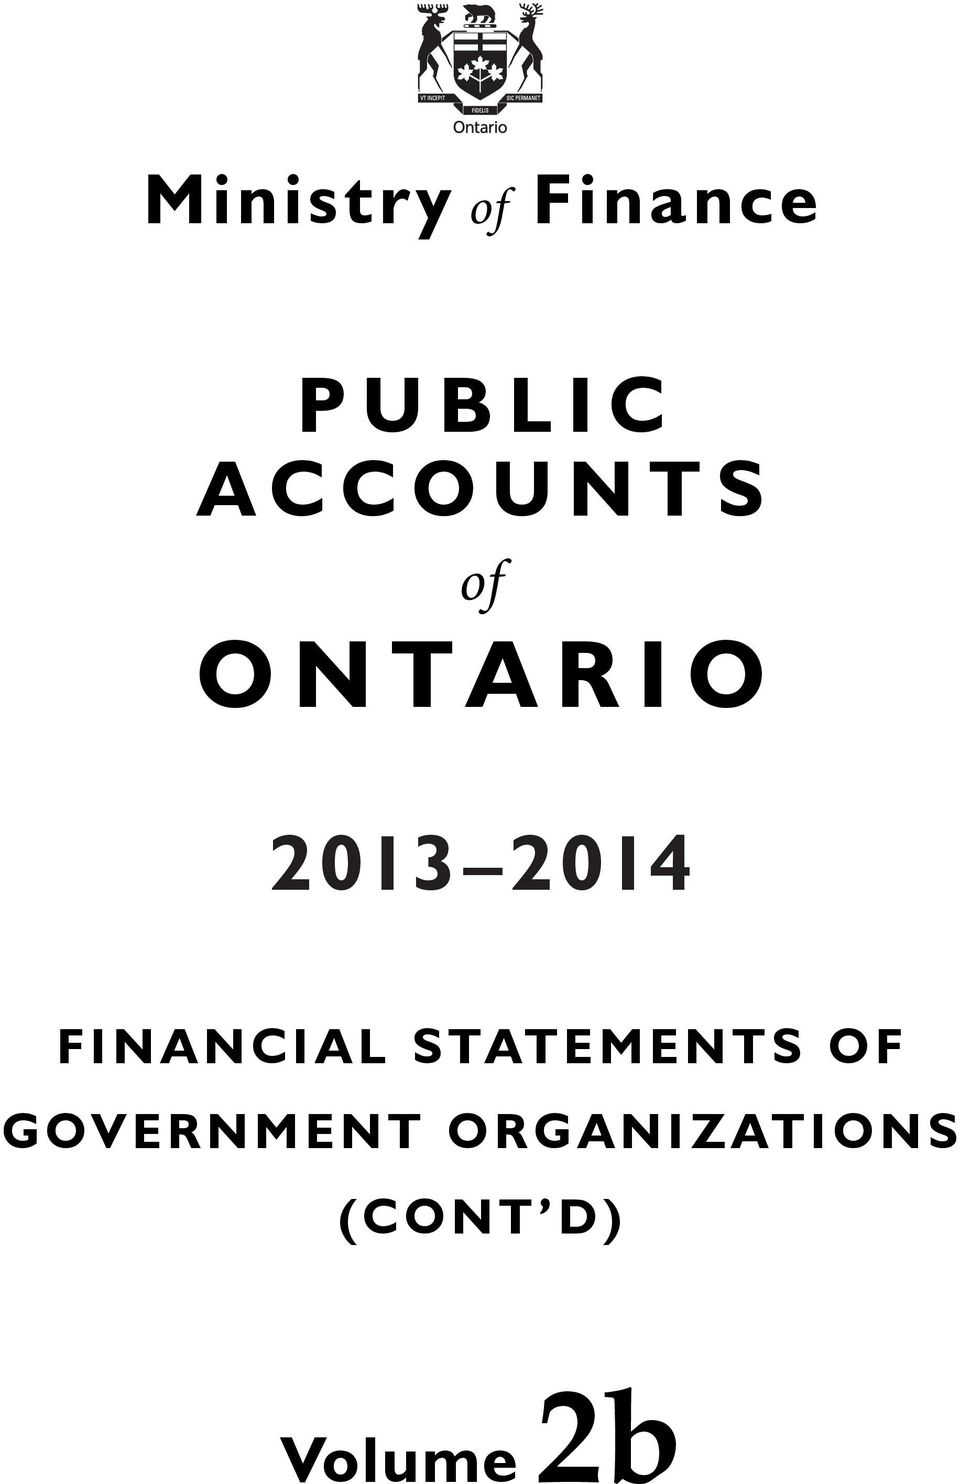 FINANCIAL STATEMENTS OF